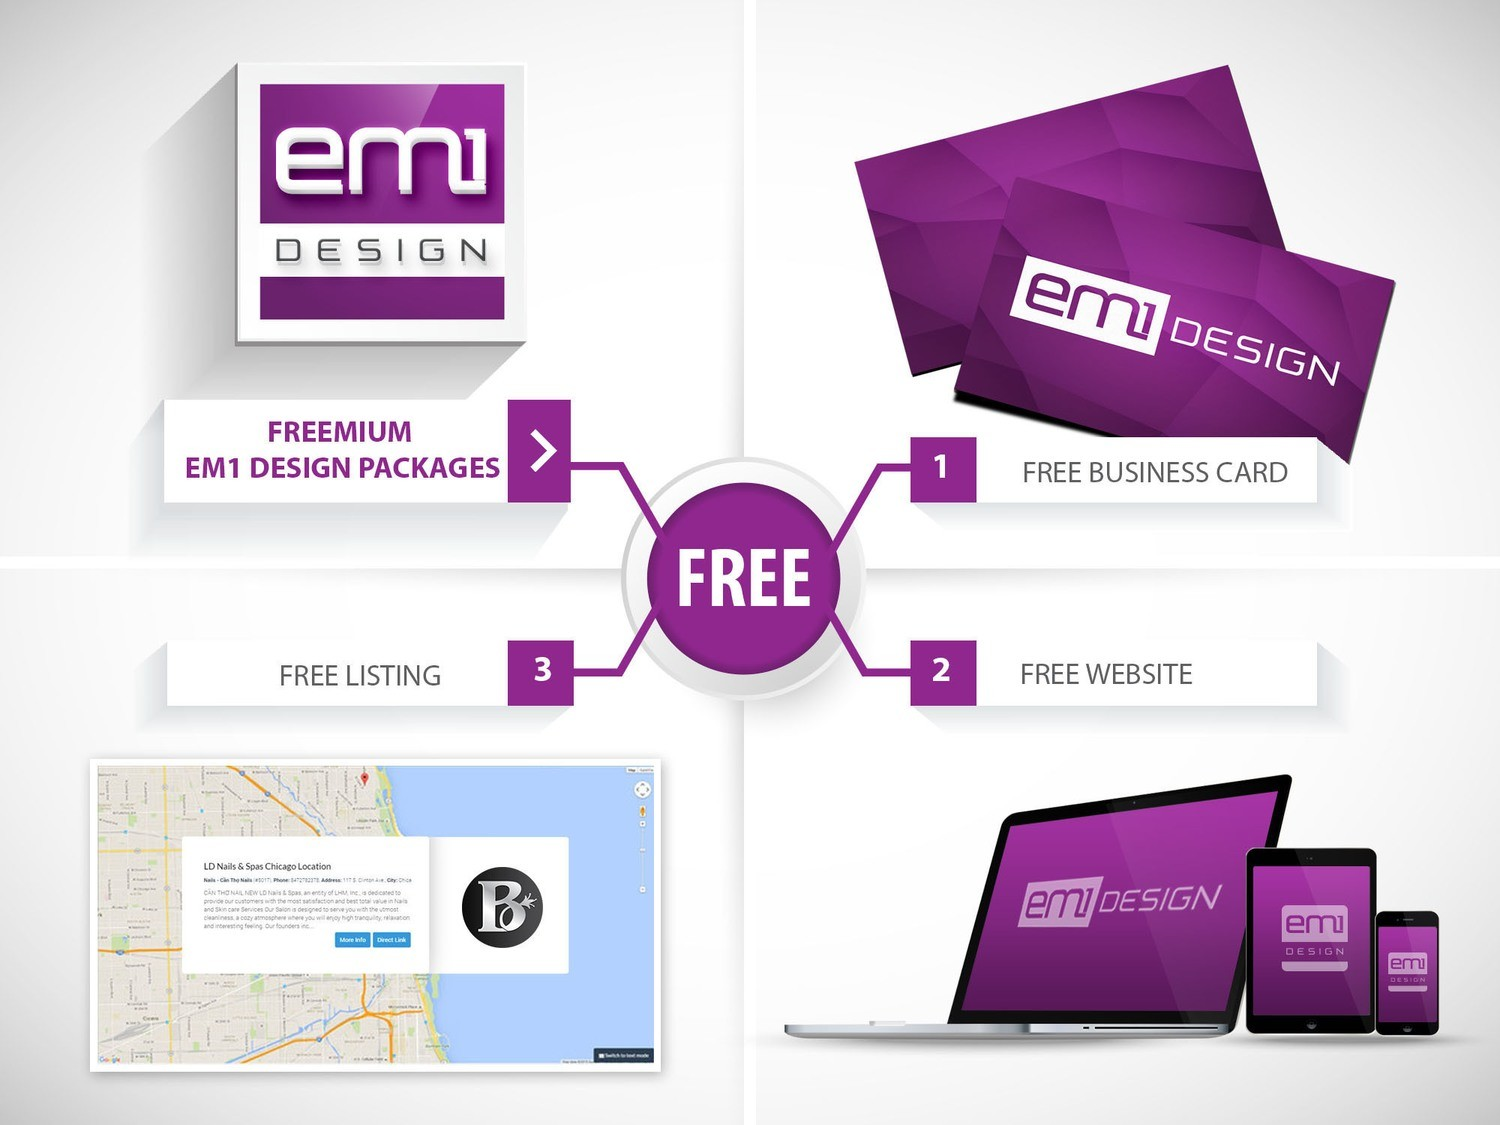 Freemium Packages For New Credit Card Customer